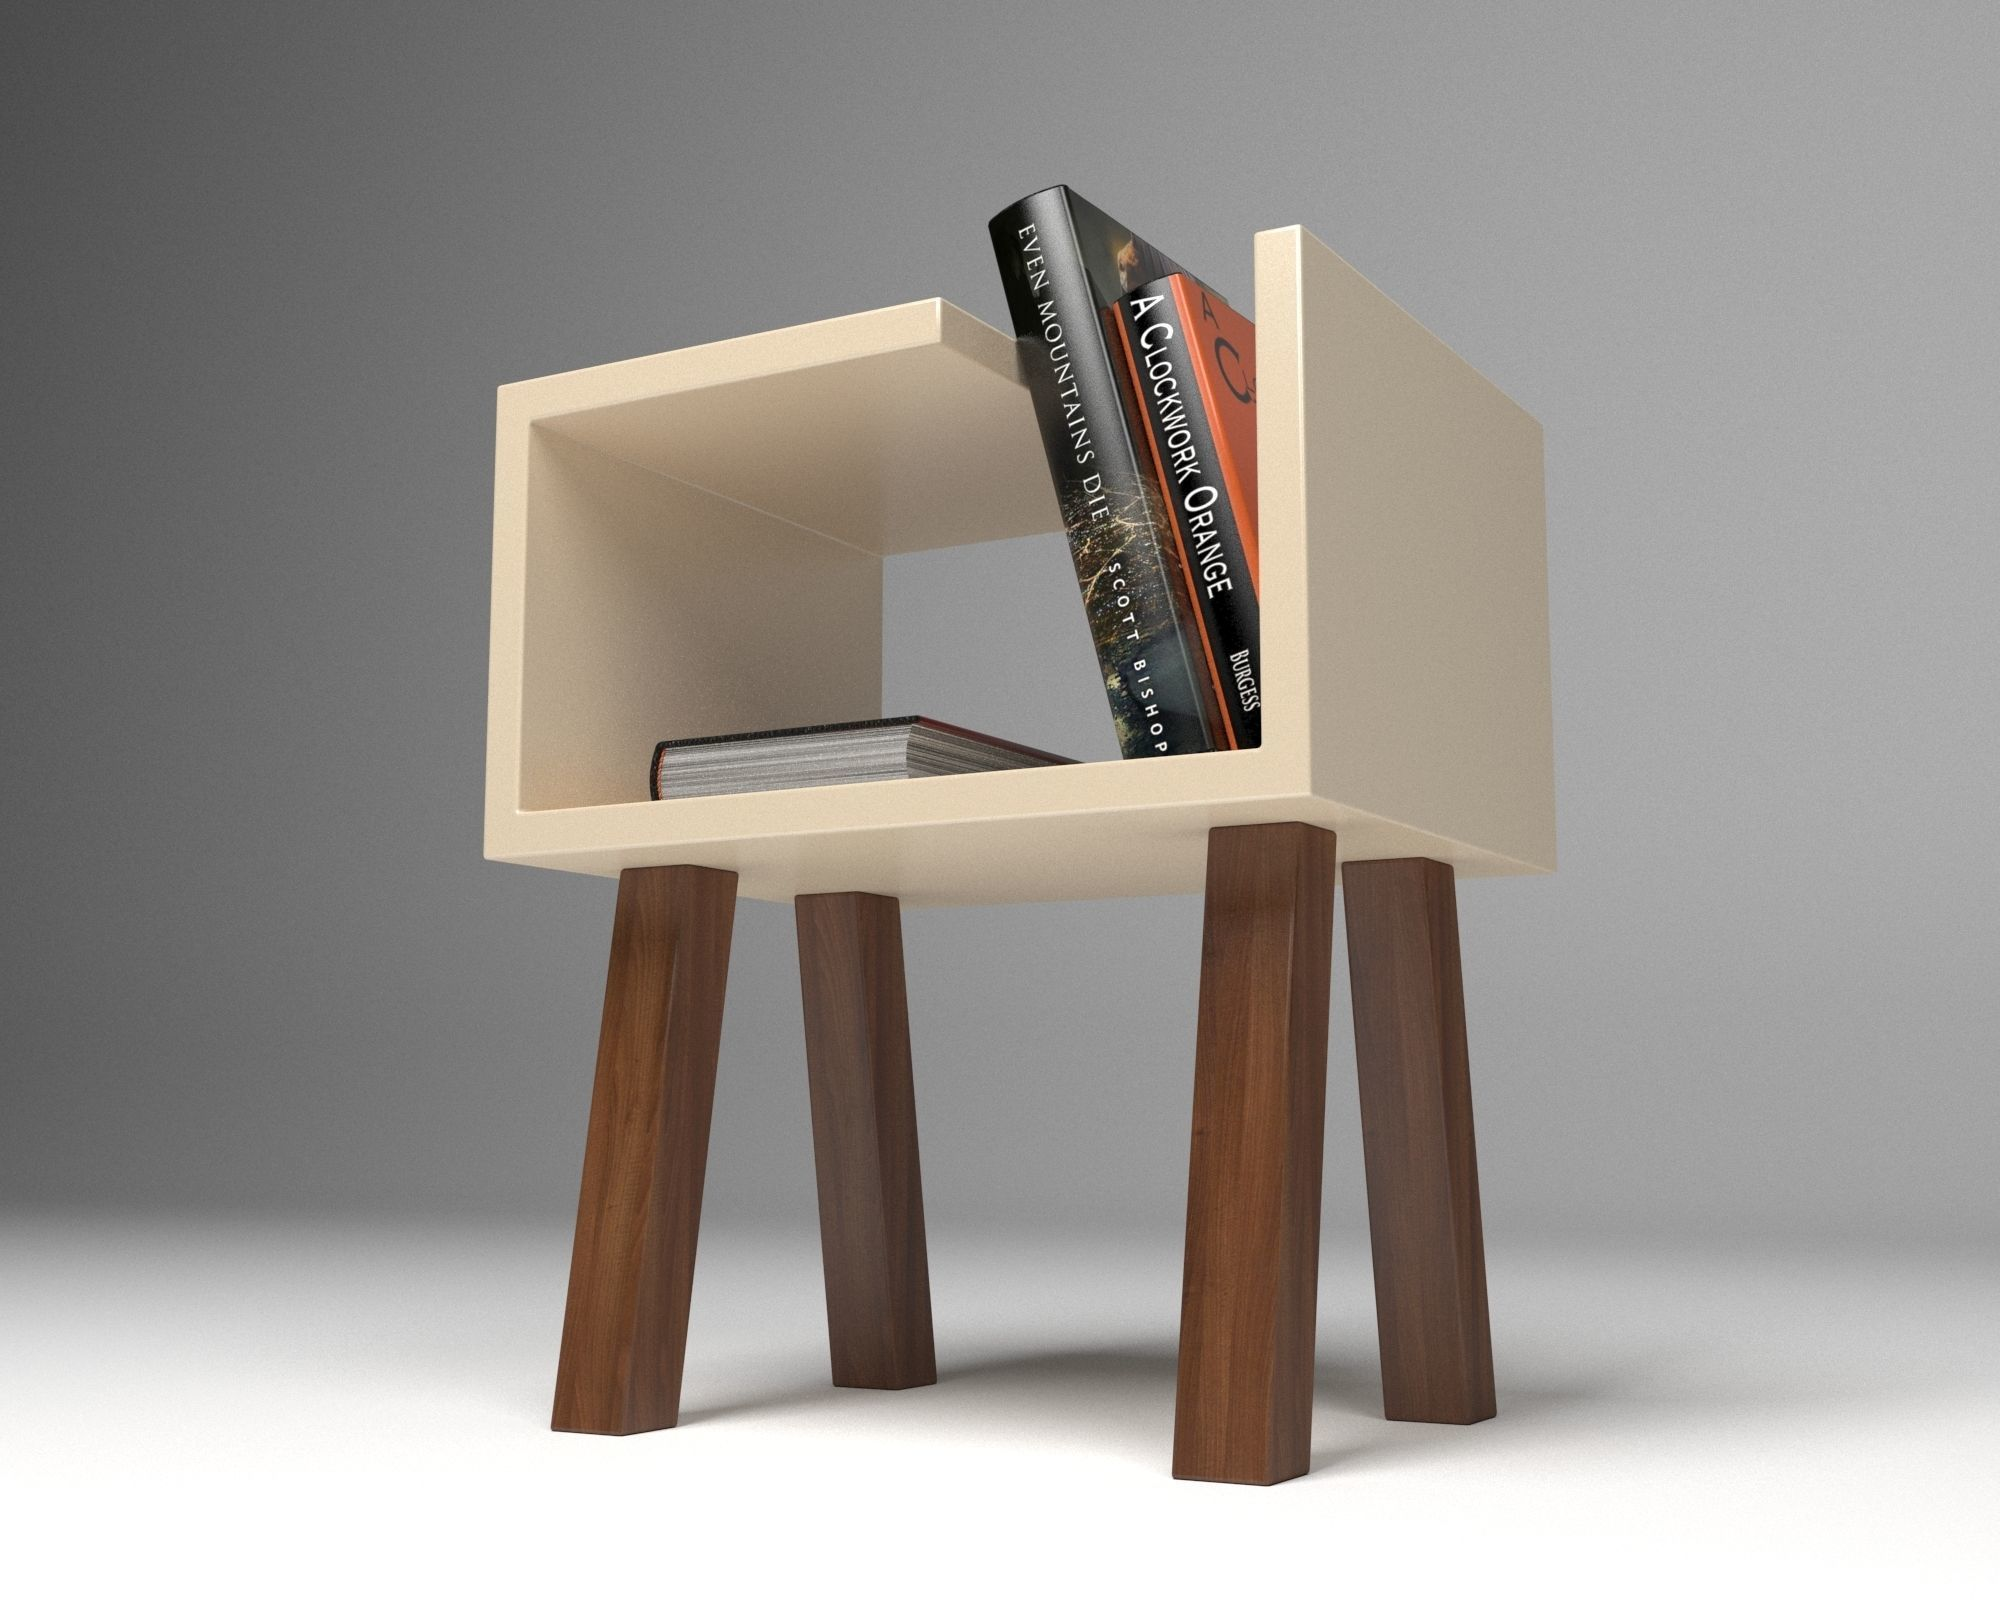 Minimal Coffee Table with Books